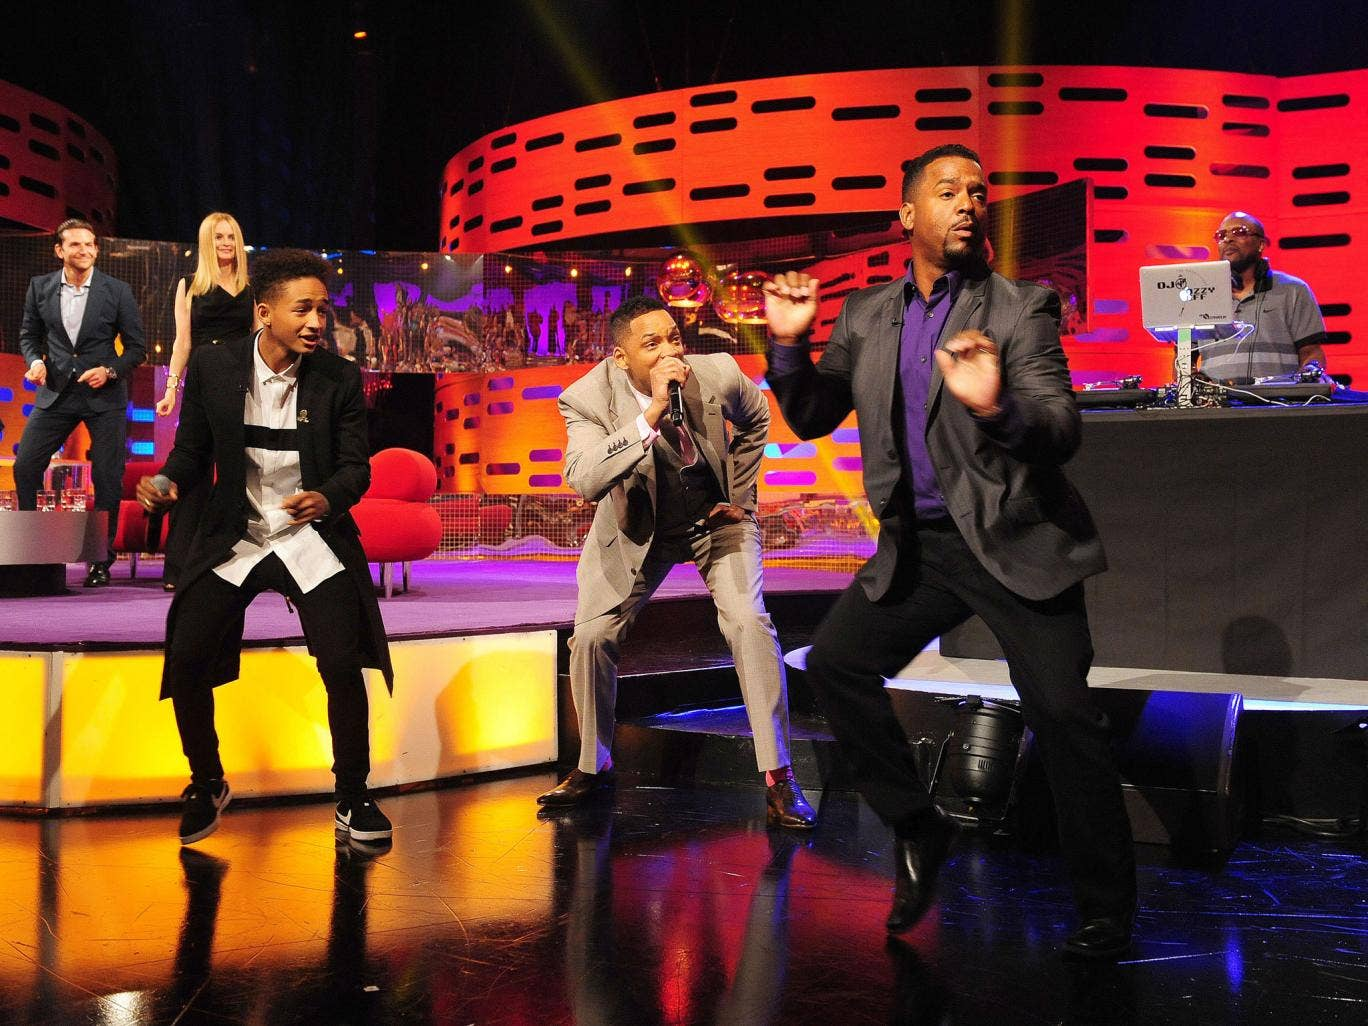 From left to right, Bradley Cooper, Heather Graham, Jaden Smith,Will Smith, Alfonso Ribeiro and DJ Jazzy Jeff on the decks behind during filming of the Graham Norton show at the London Studios